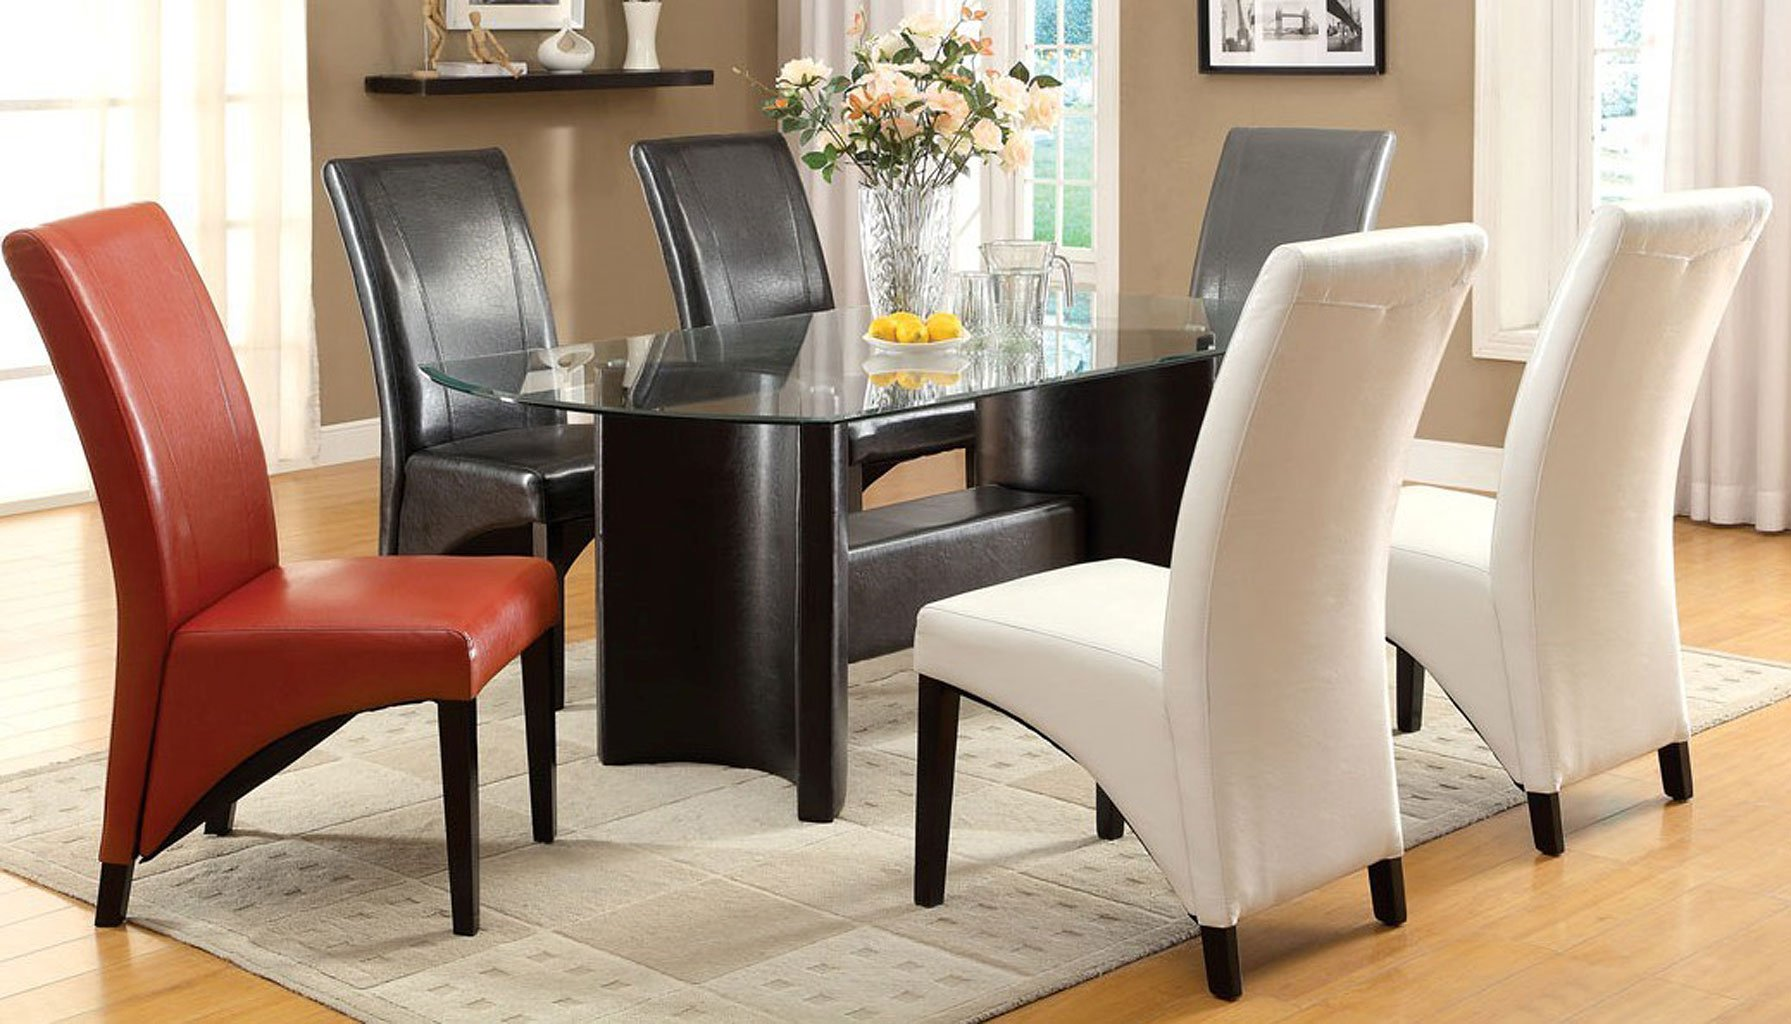 Grey Dining Room Chairs: Madison Dining Room Set W/ Gray Chairs Furniture Of